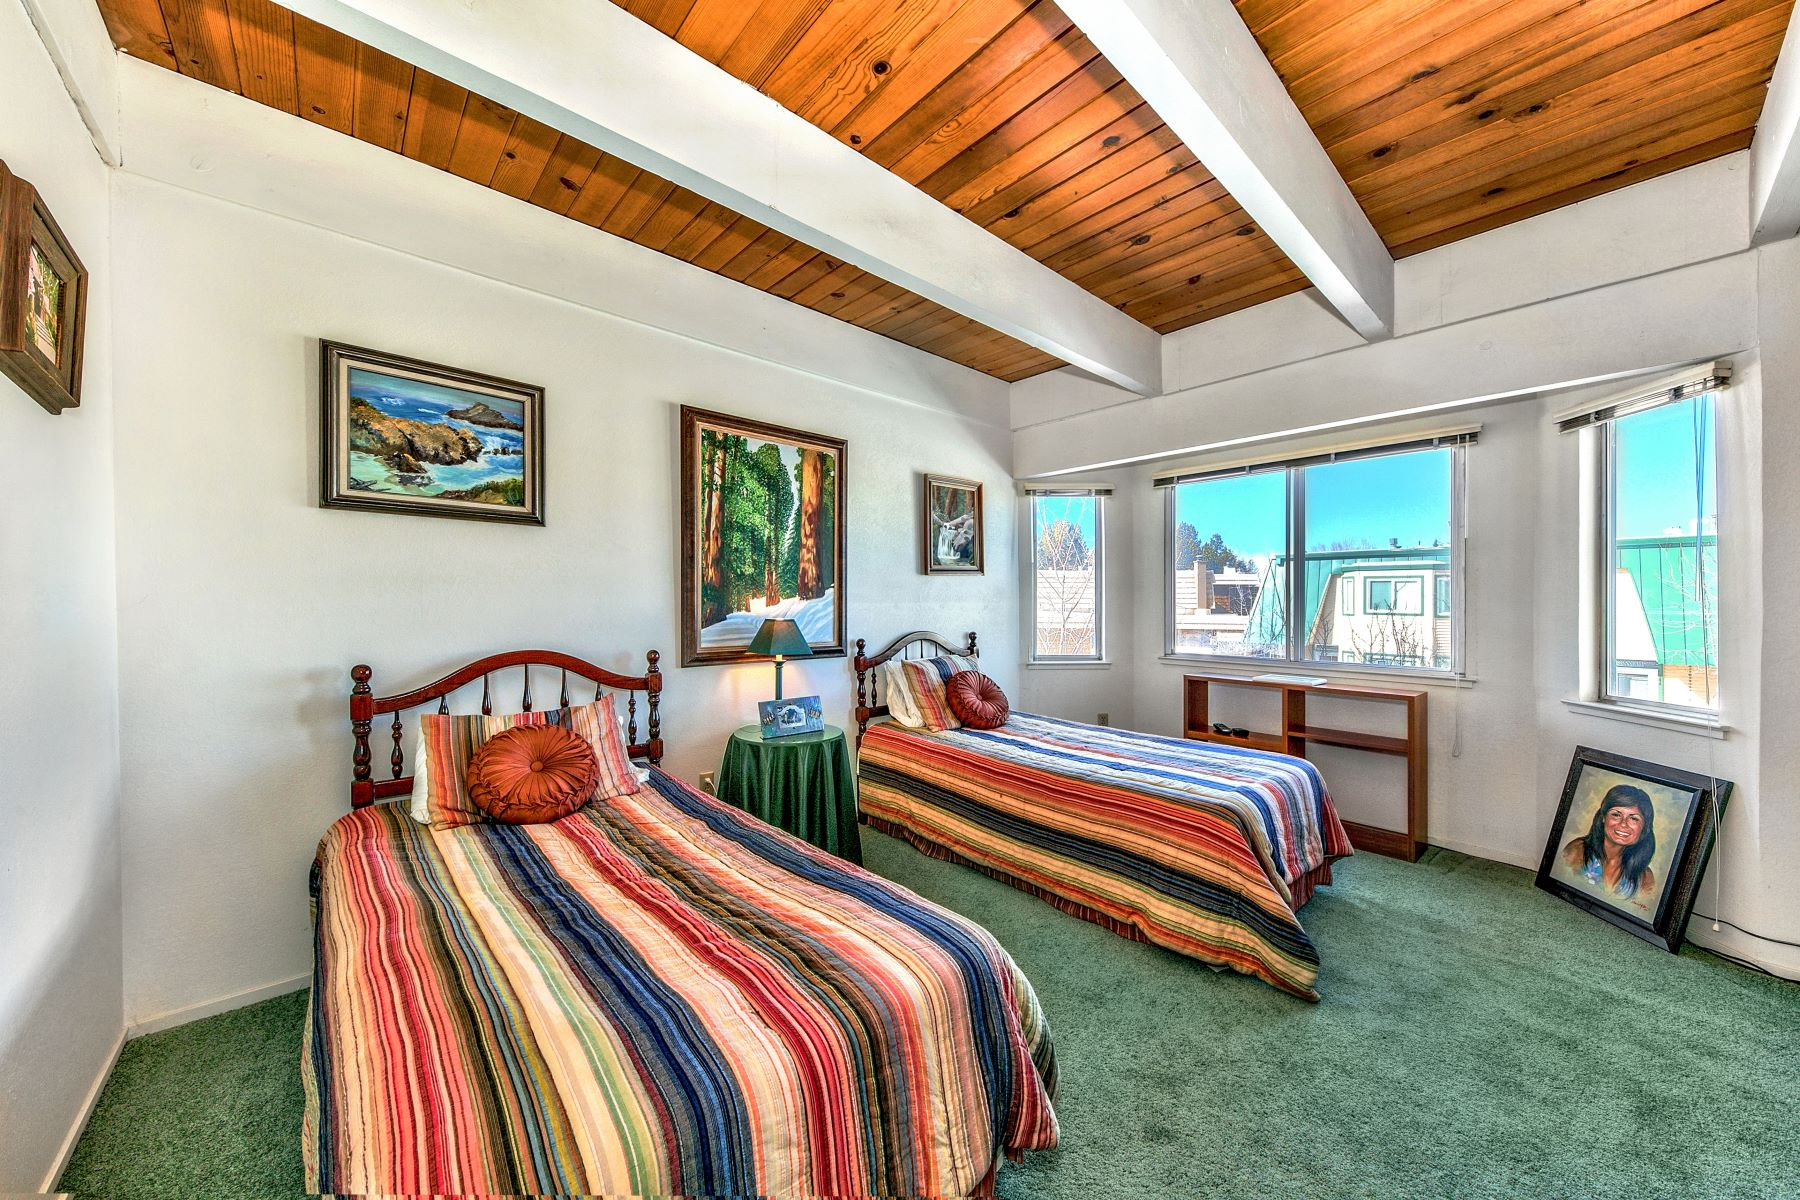 Additional photo for property listing at 439 Ala Wai #112, South Lake Tahoe, CA 439 Ala Wai #112 South Lake Tahoe, California 96150 United States